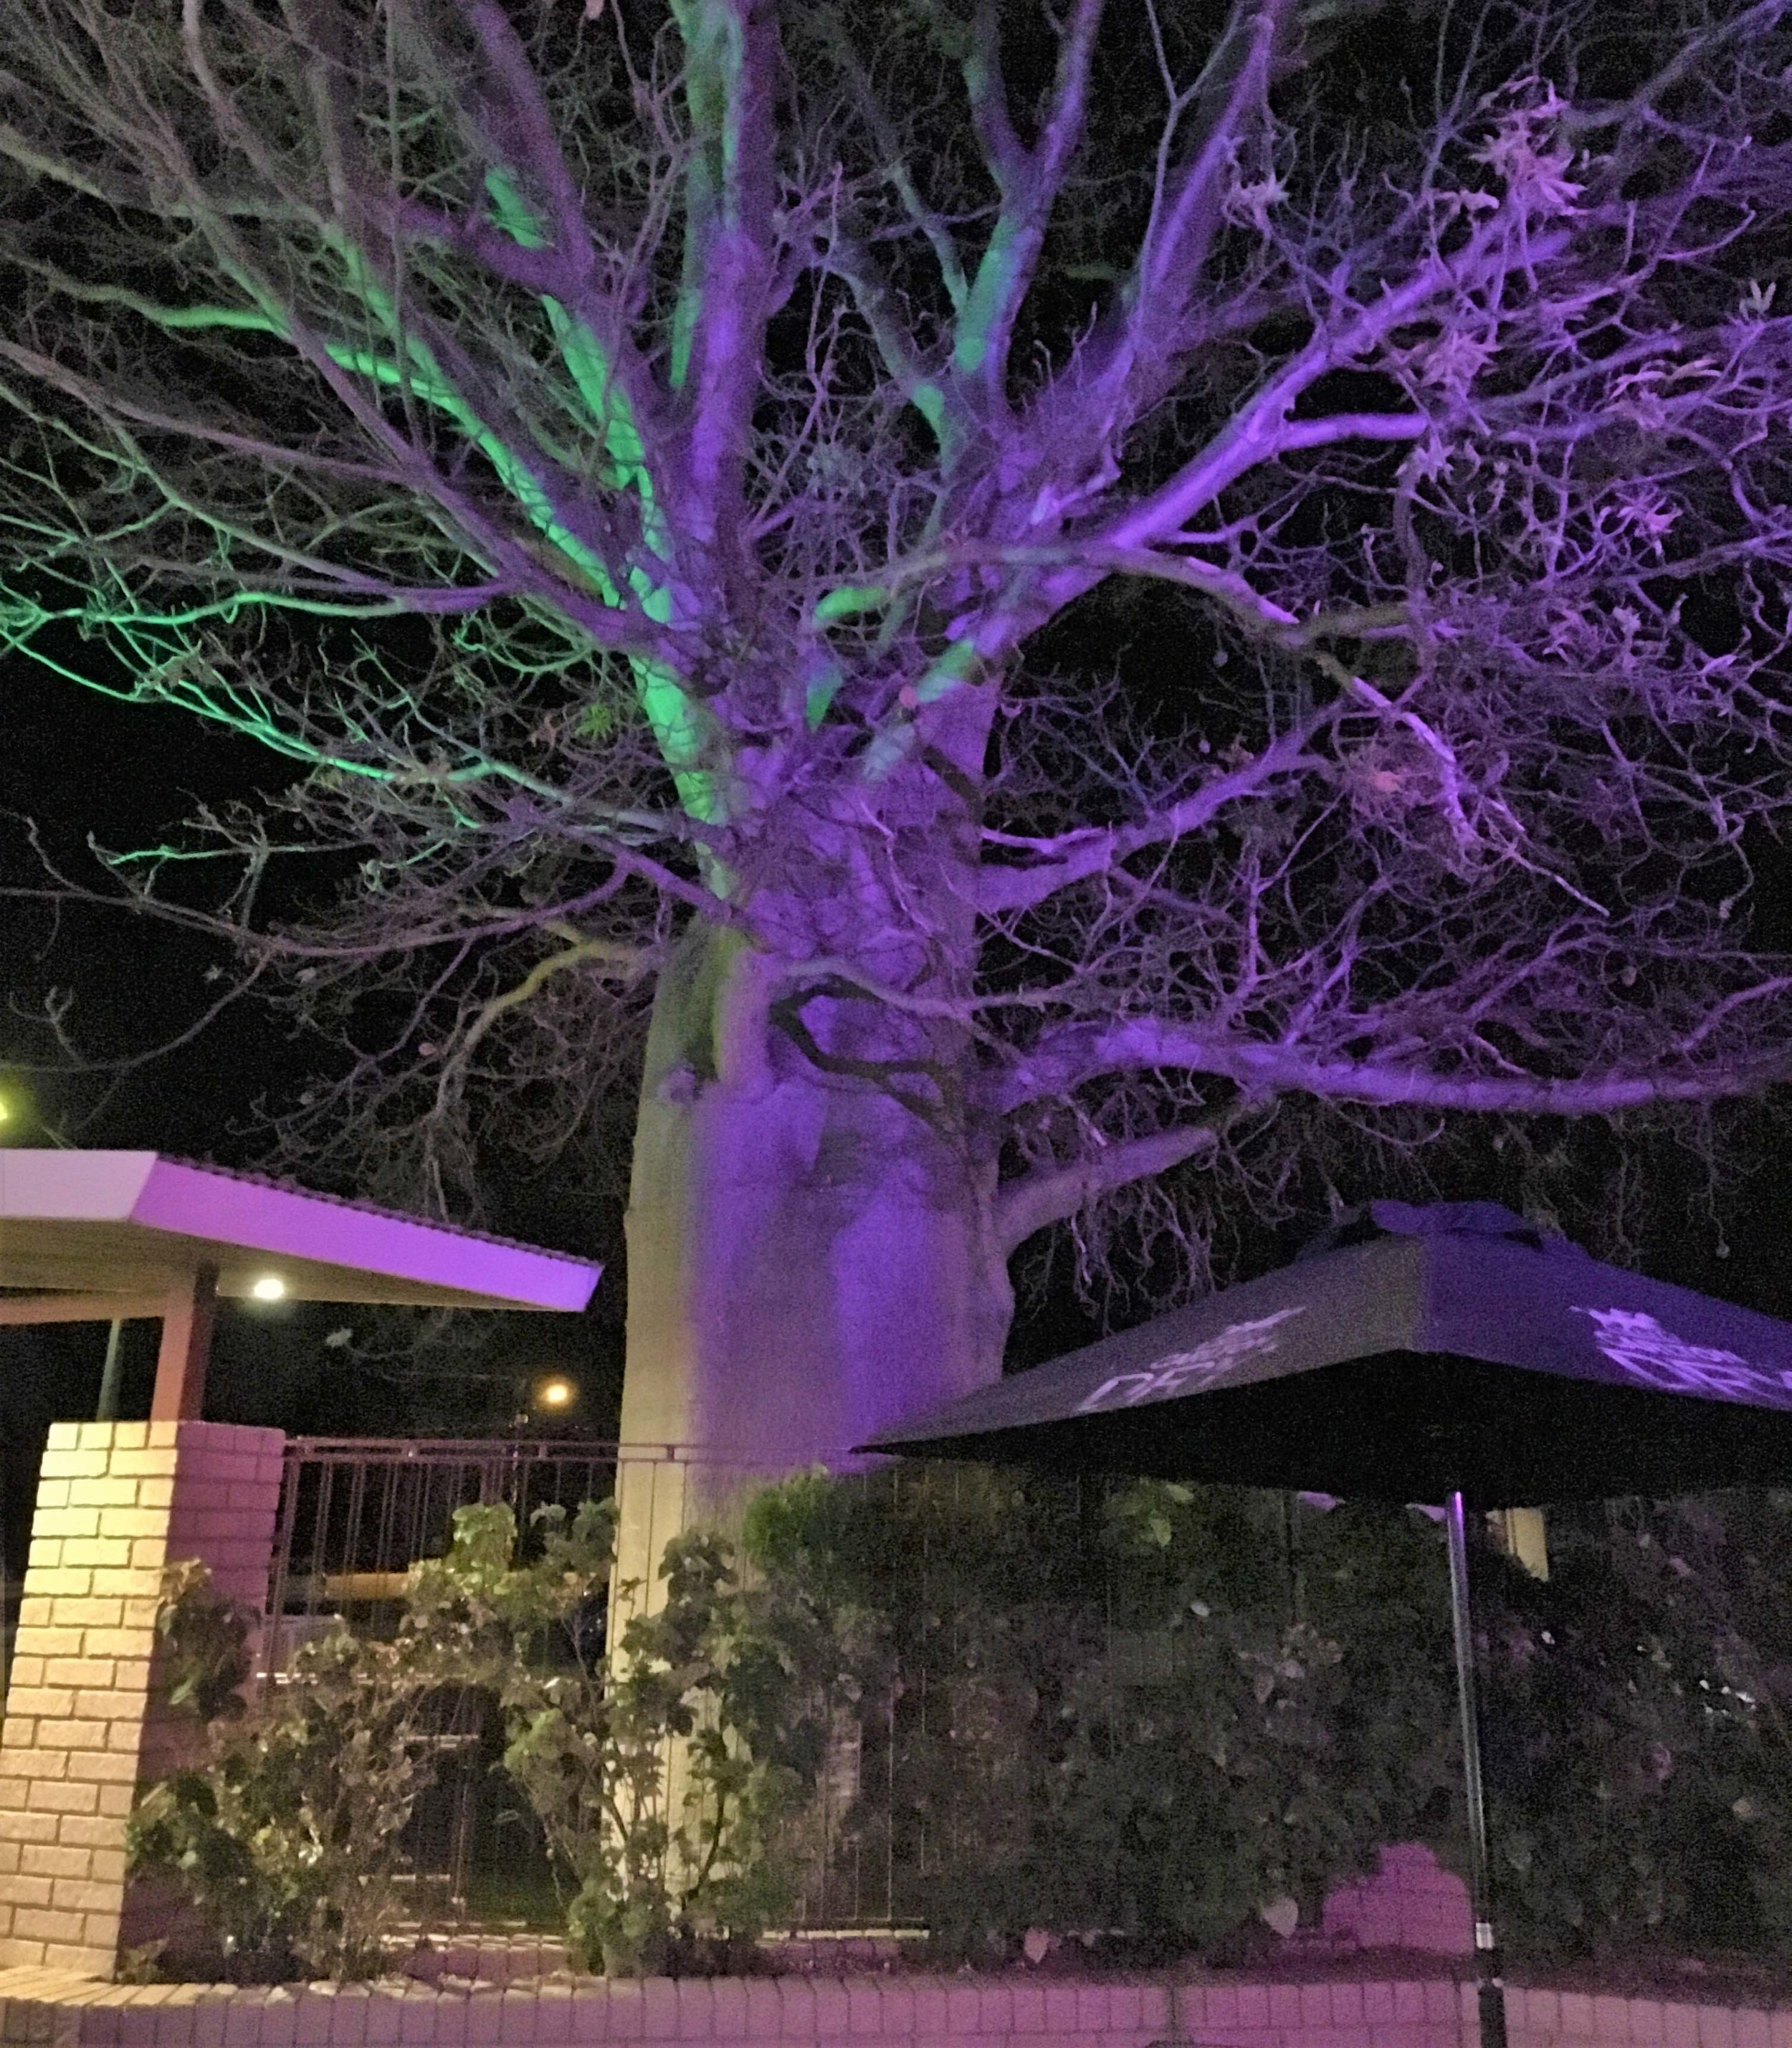 Night-lit baobab outside a restaurant in Kununurra.